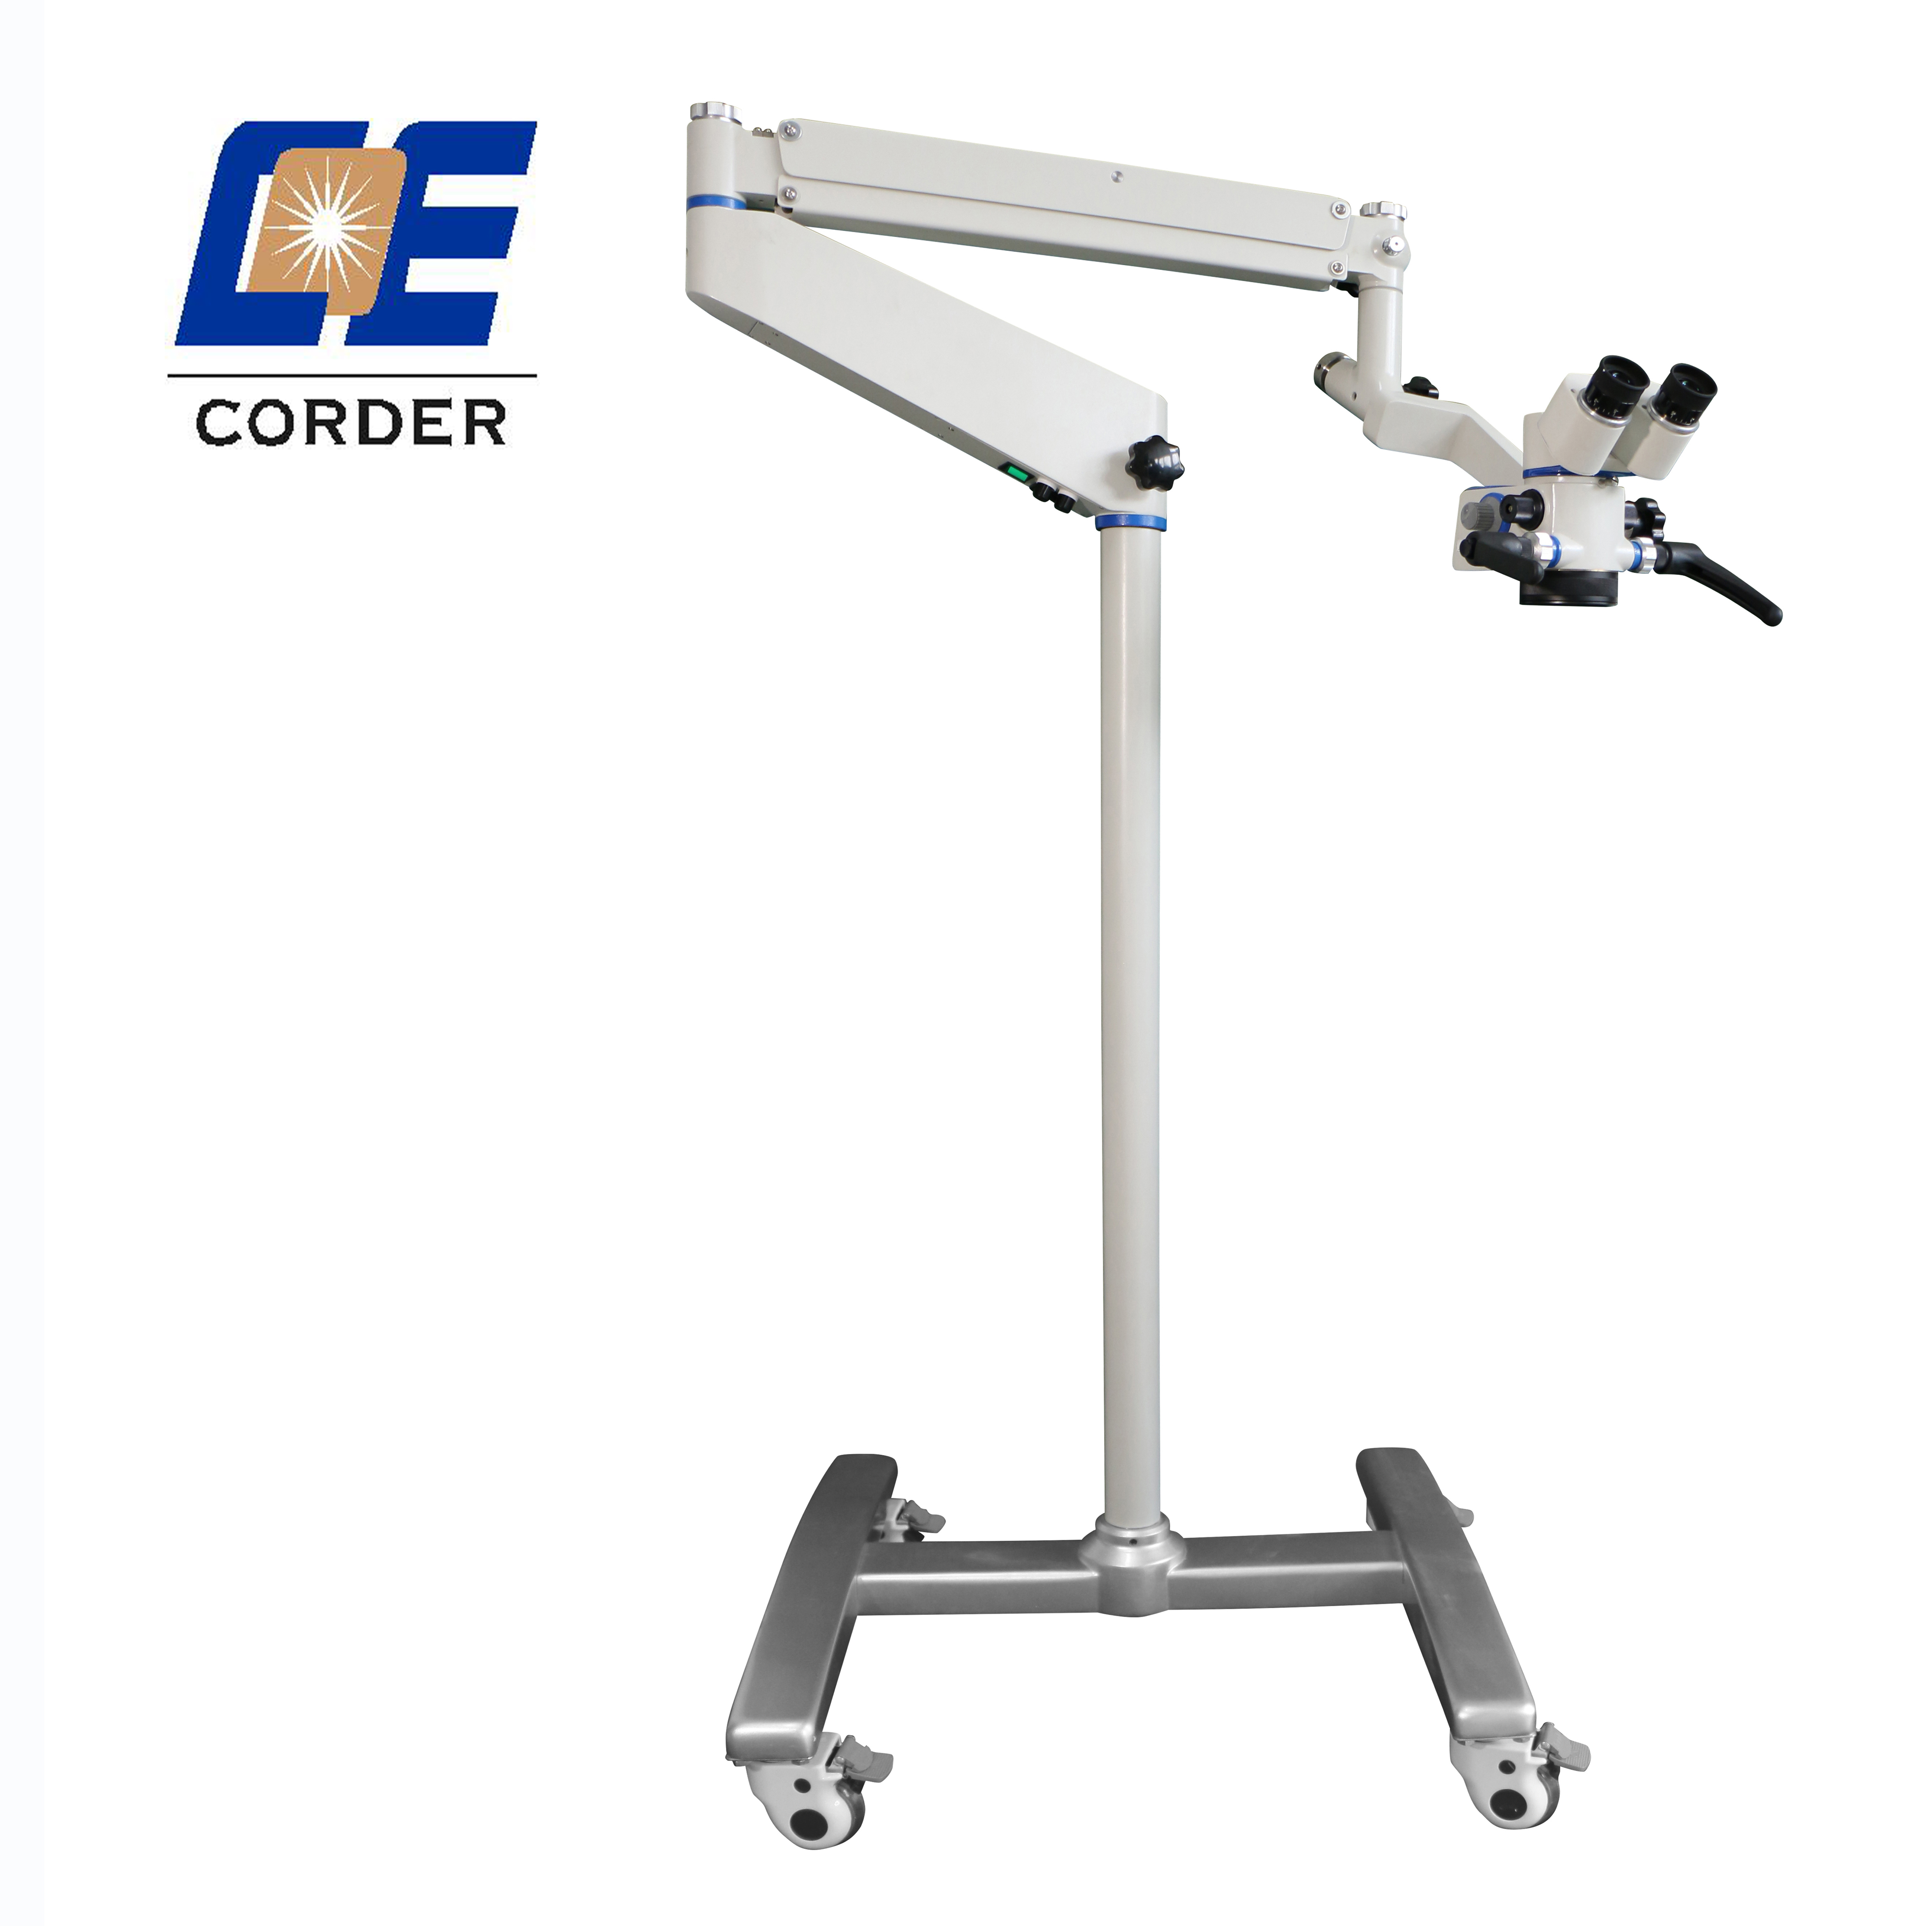 Pictures Of Dental Surgical Instruments Pdf Orthodontic And Names Labomed  Microscope 510 6b - Buy Dental Instruments Pictures And Names,Pictures Of